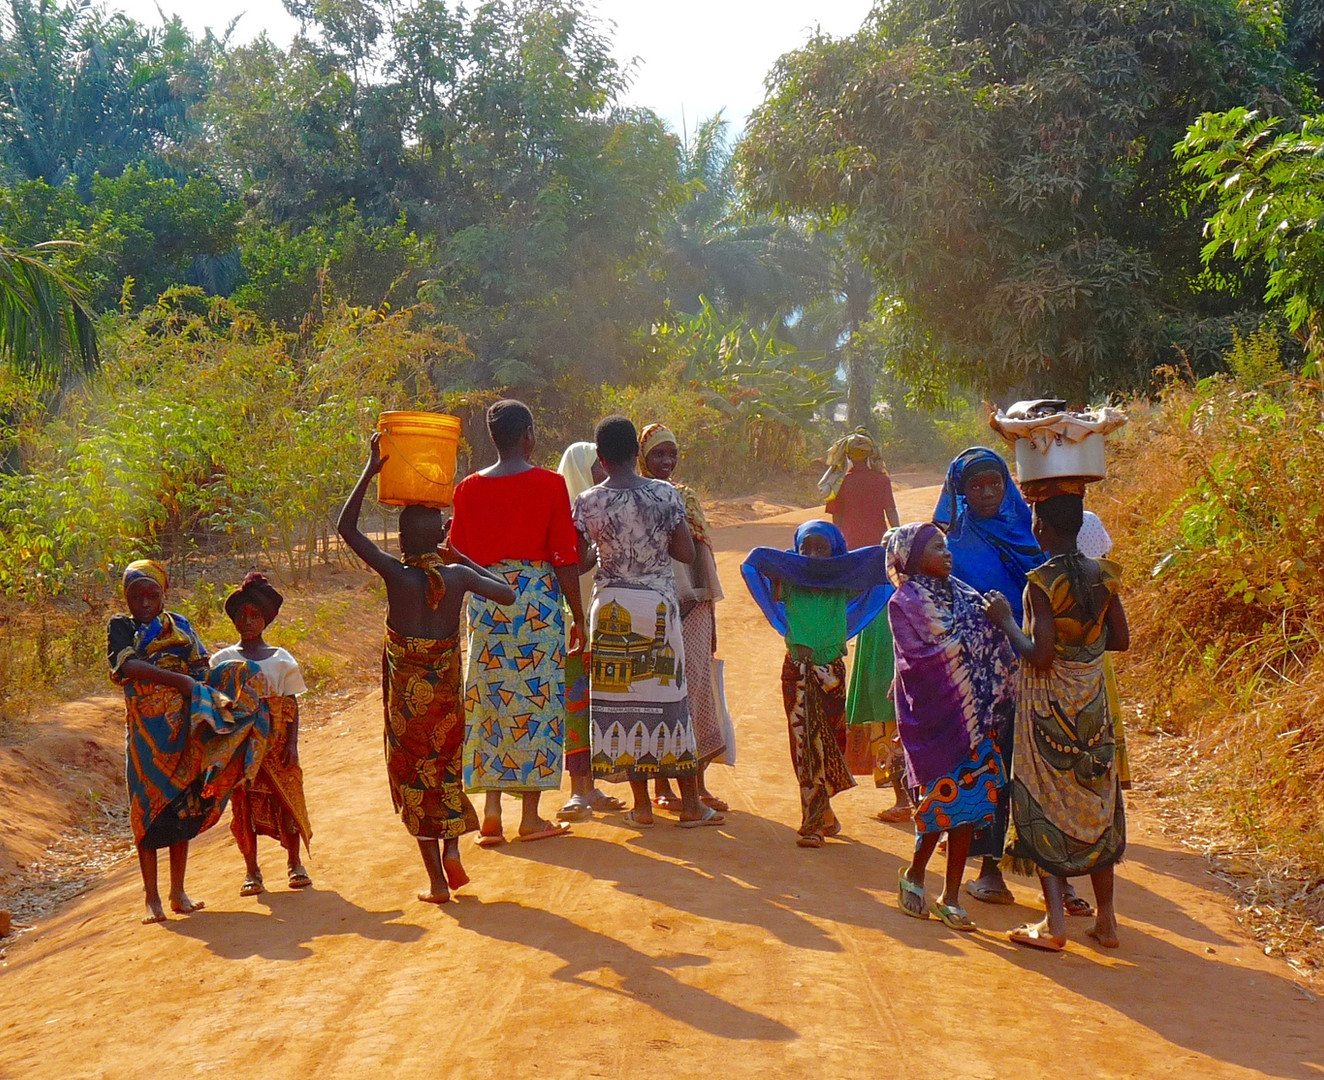 A group of Tanzanian women on the road to Bubongo Village. Photo by Thomas Crocker, 2009.